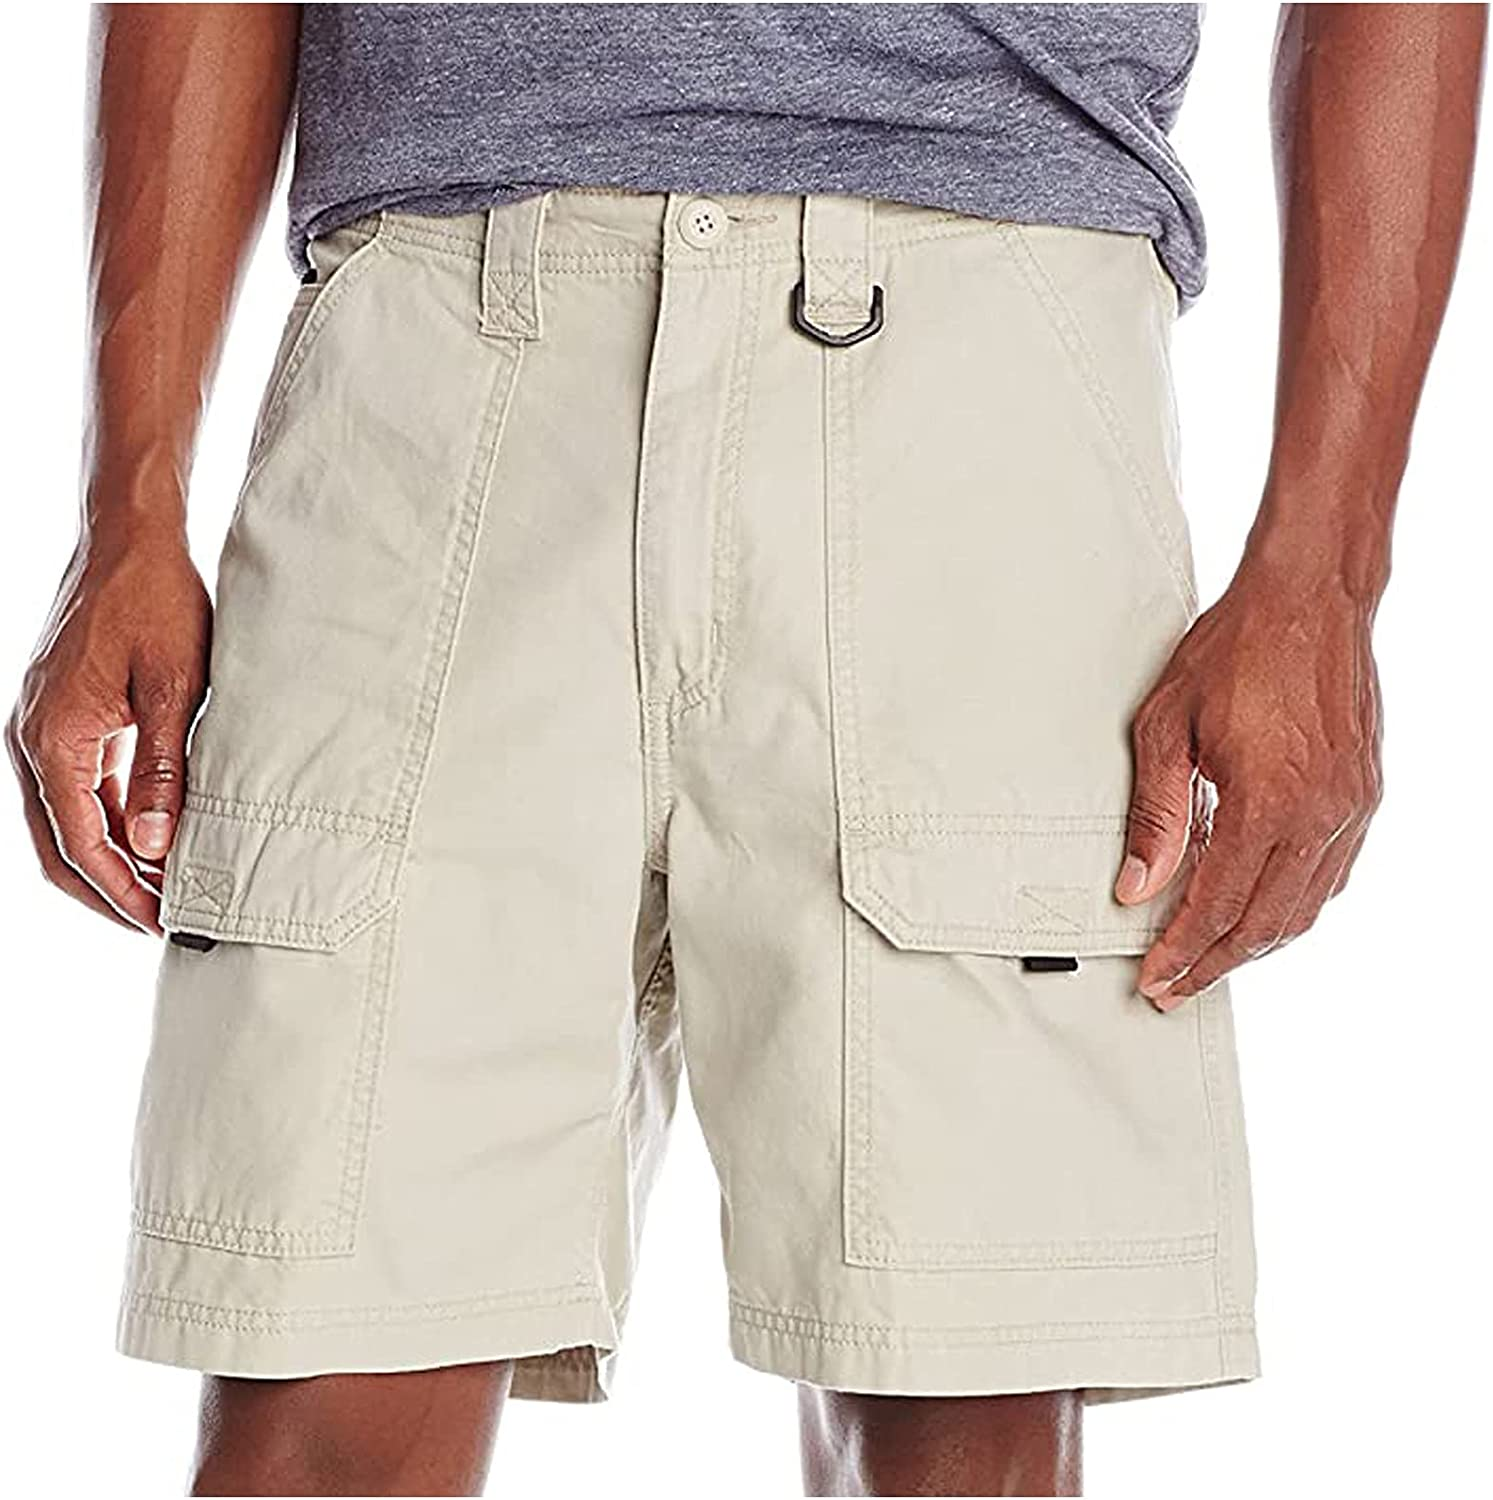 ZSCC Men's Cargo Shorts with Pockets Short Work Pants Casual Cargo Pants Short Pants Men's for Leisure Short Chino Pants